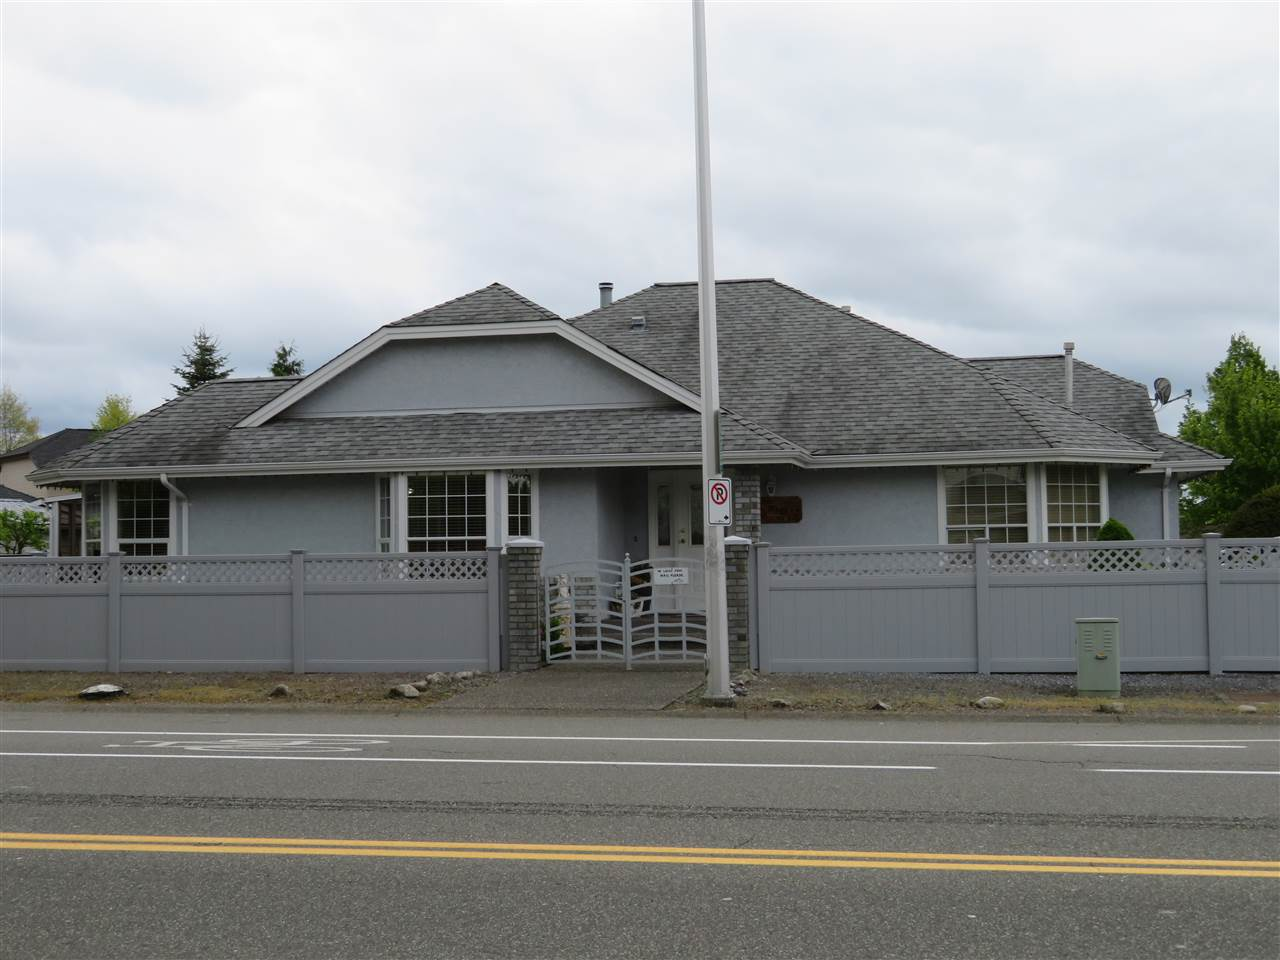 Removed: 6302 188 Street, Surrey, BC - Removed on 2018-10-01 06:06:33